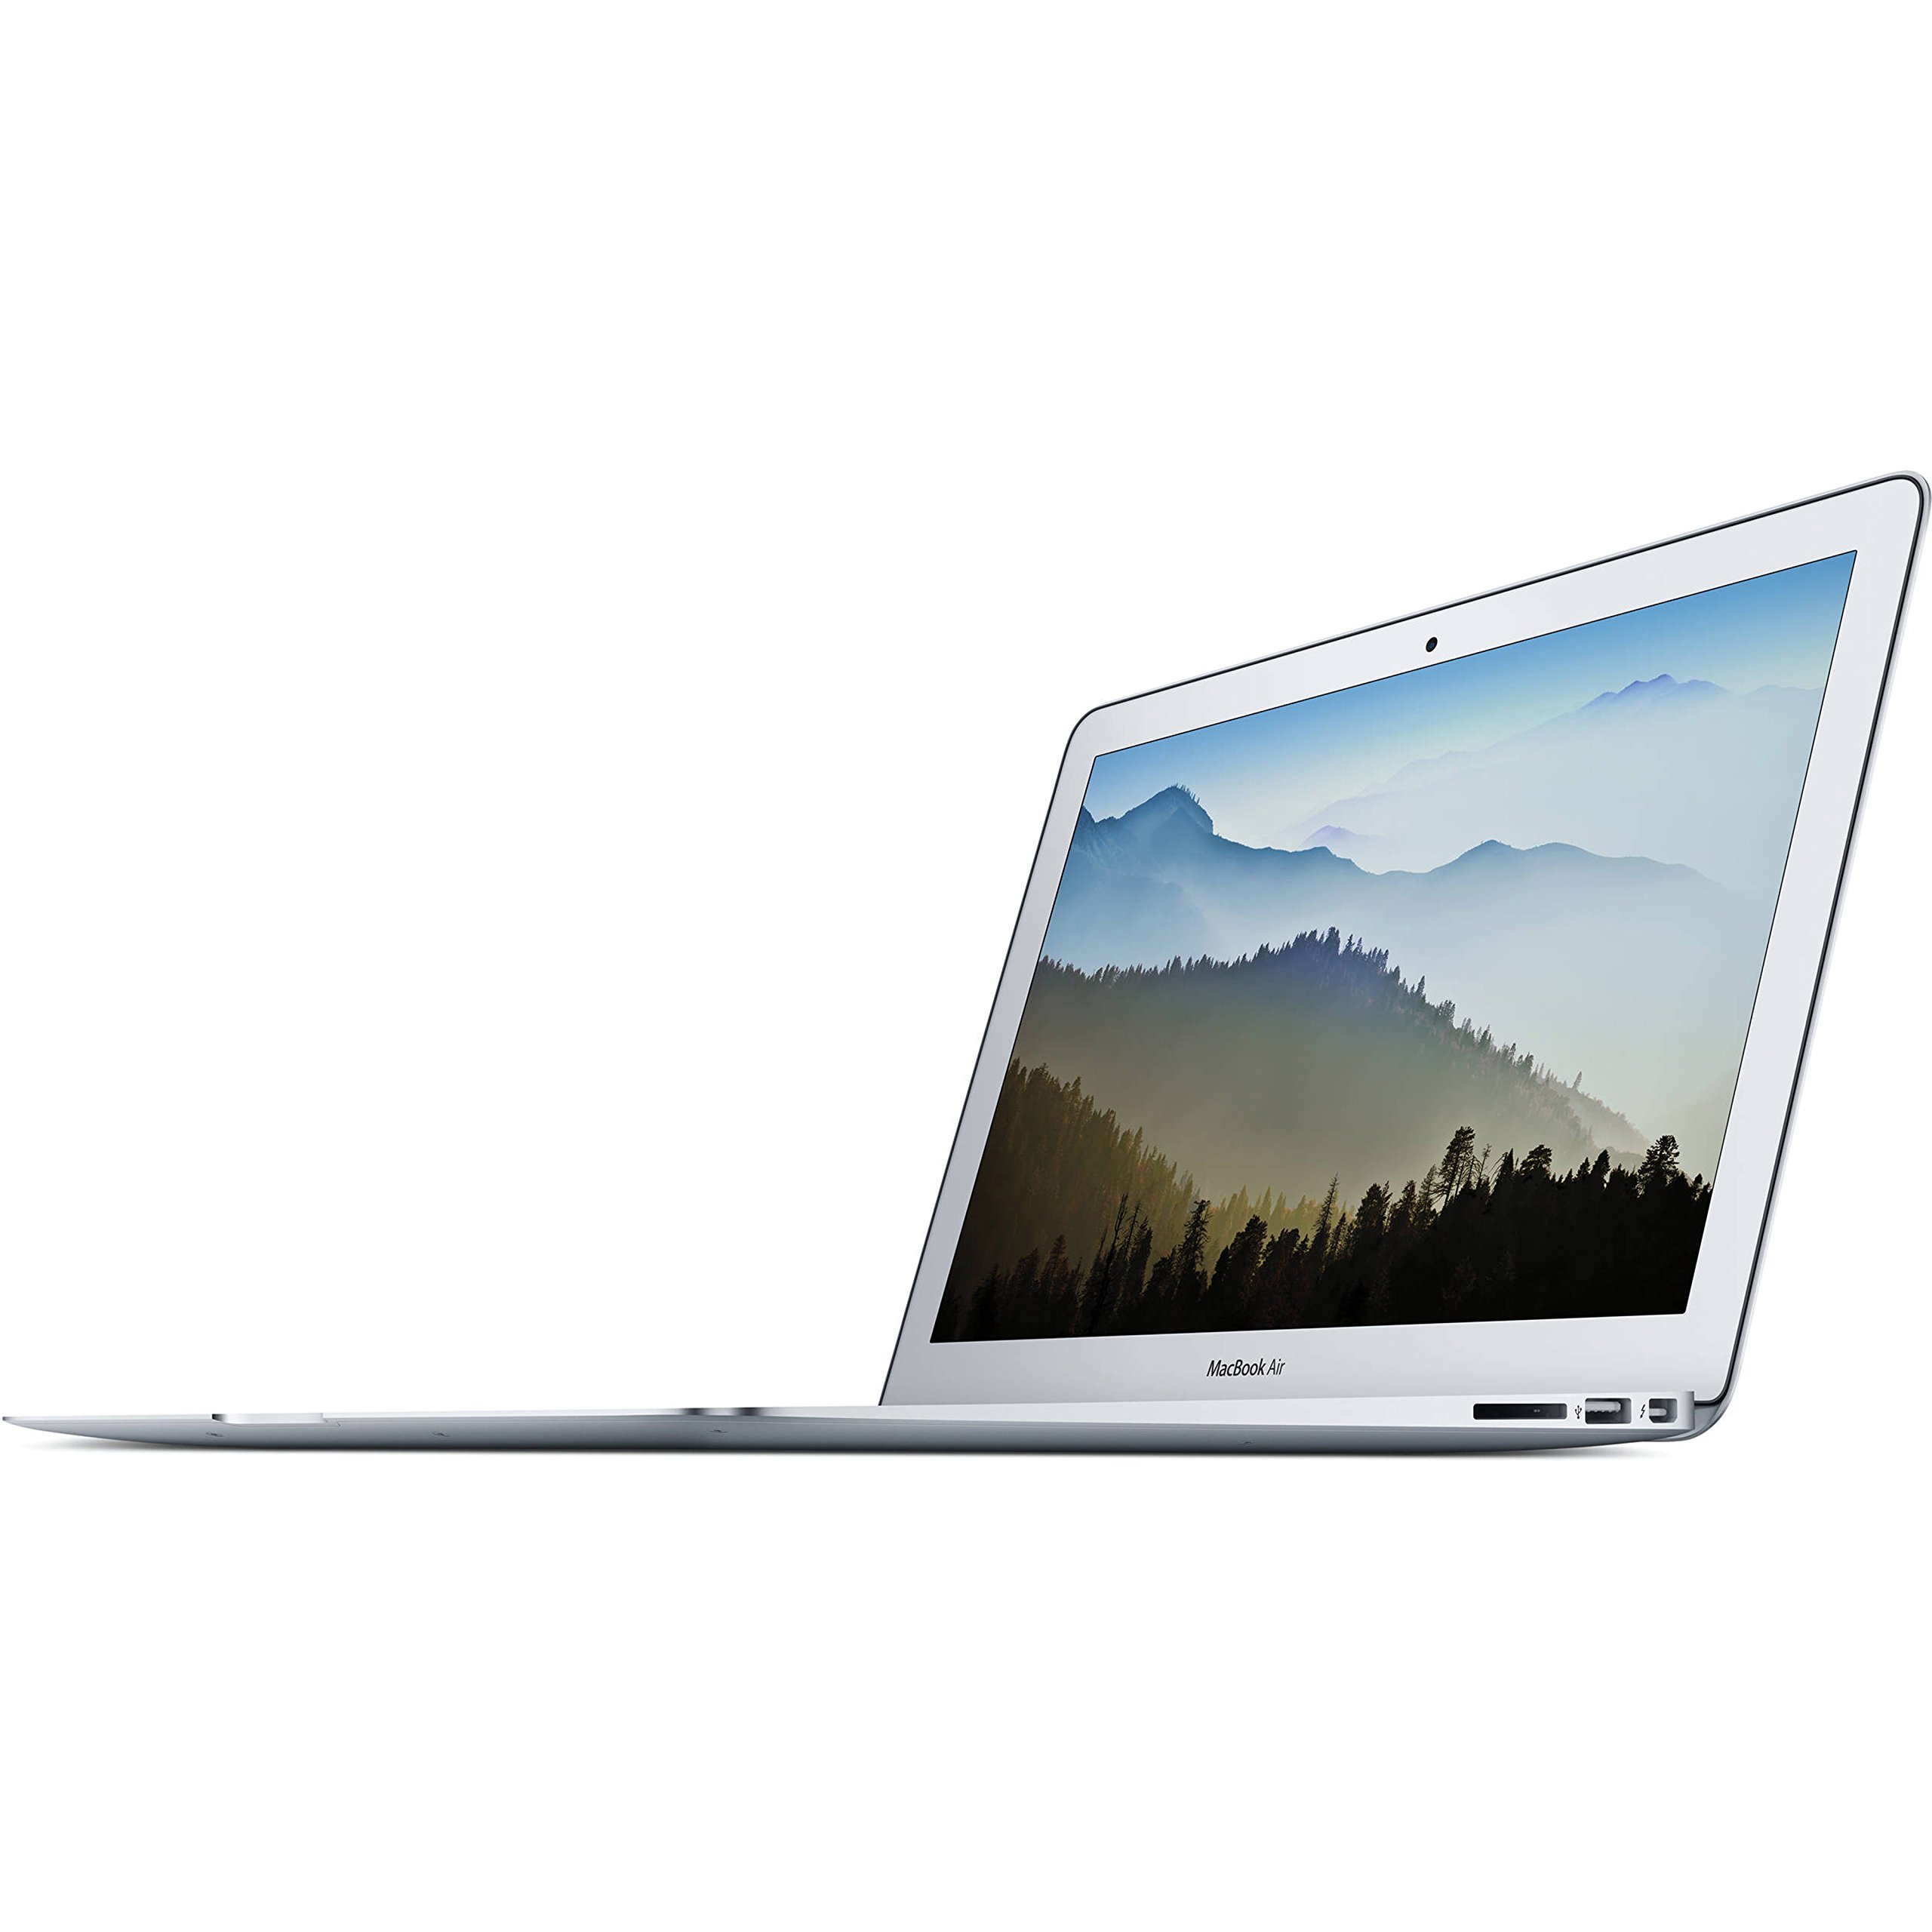 Apple 13'' MacBook Air, 1.8GHz Intel Core i5 Dual Core Processor, 8GB RAM, 128GB SSD, Mac OS, Silver, MQD32LL/A (Newest Version)